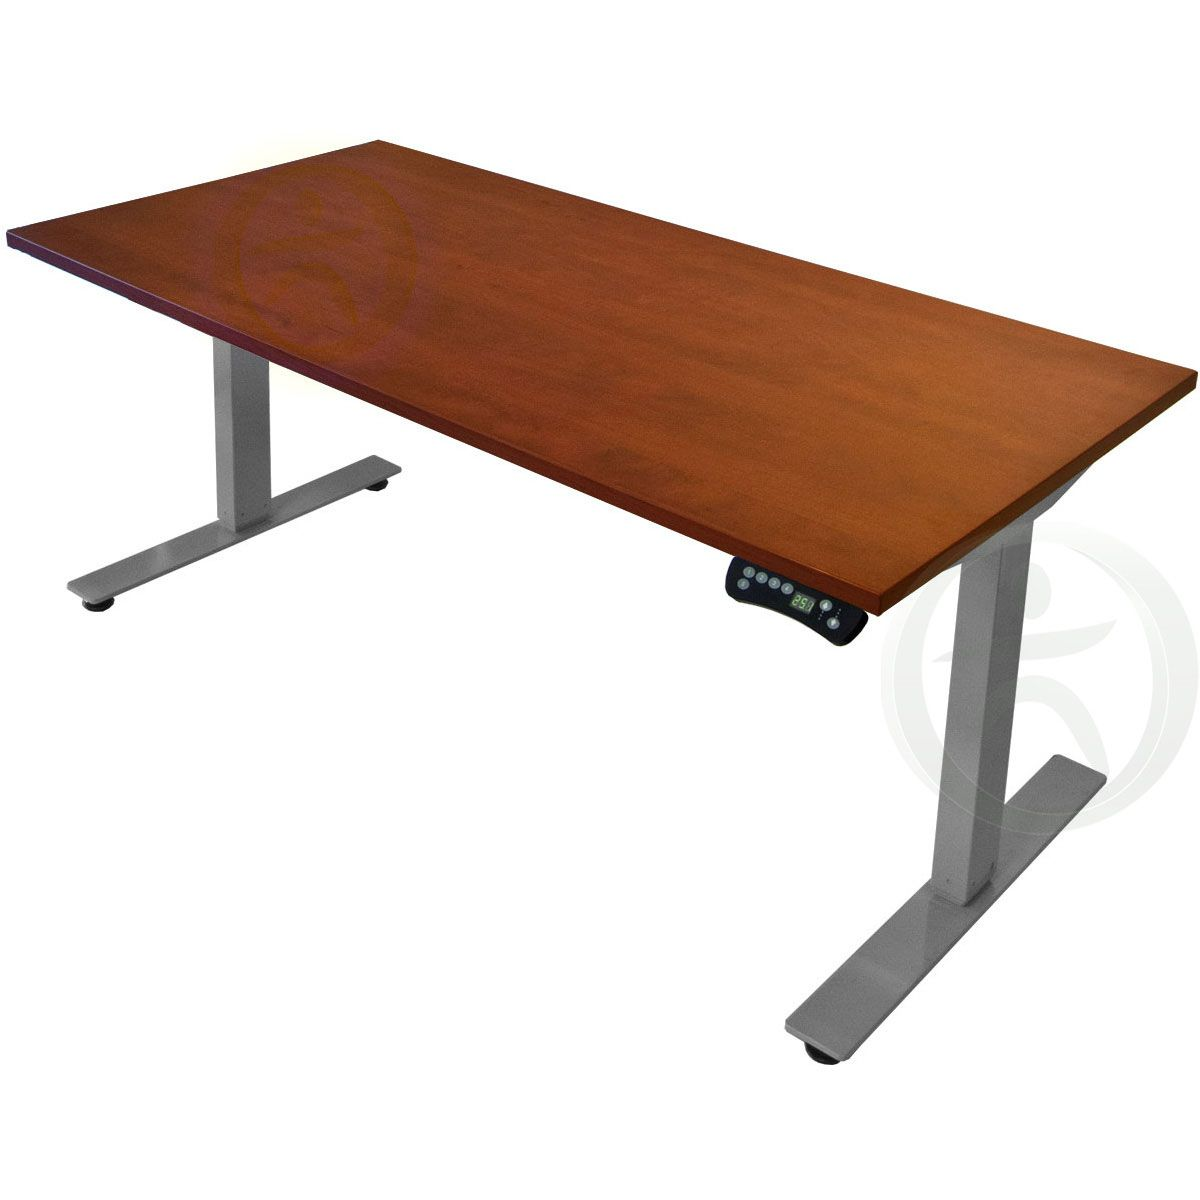 The Uplift 900 Electric Sit Stand Desk Silver Is A Sturdy Affordable Electric Adjustable Height Standing Sit Stand Desk Adjustable Height Desk Standing Desk